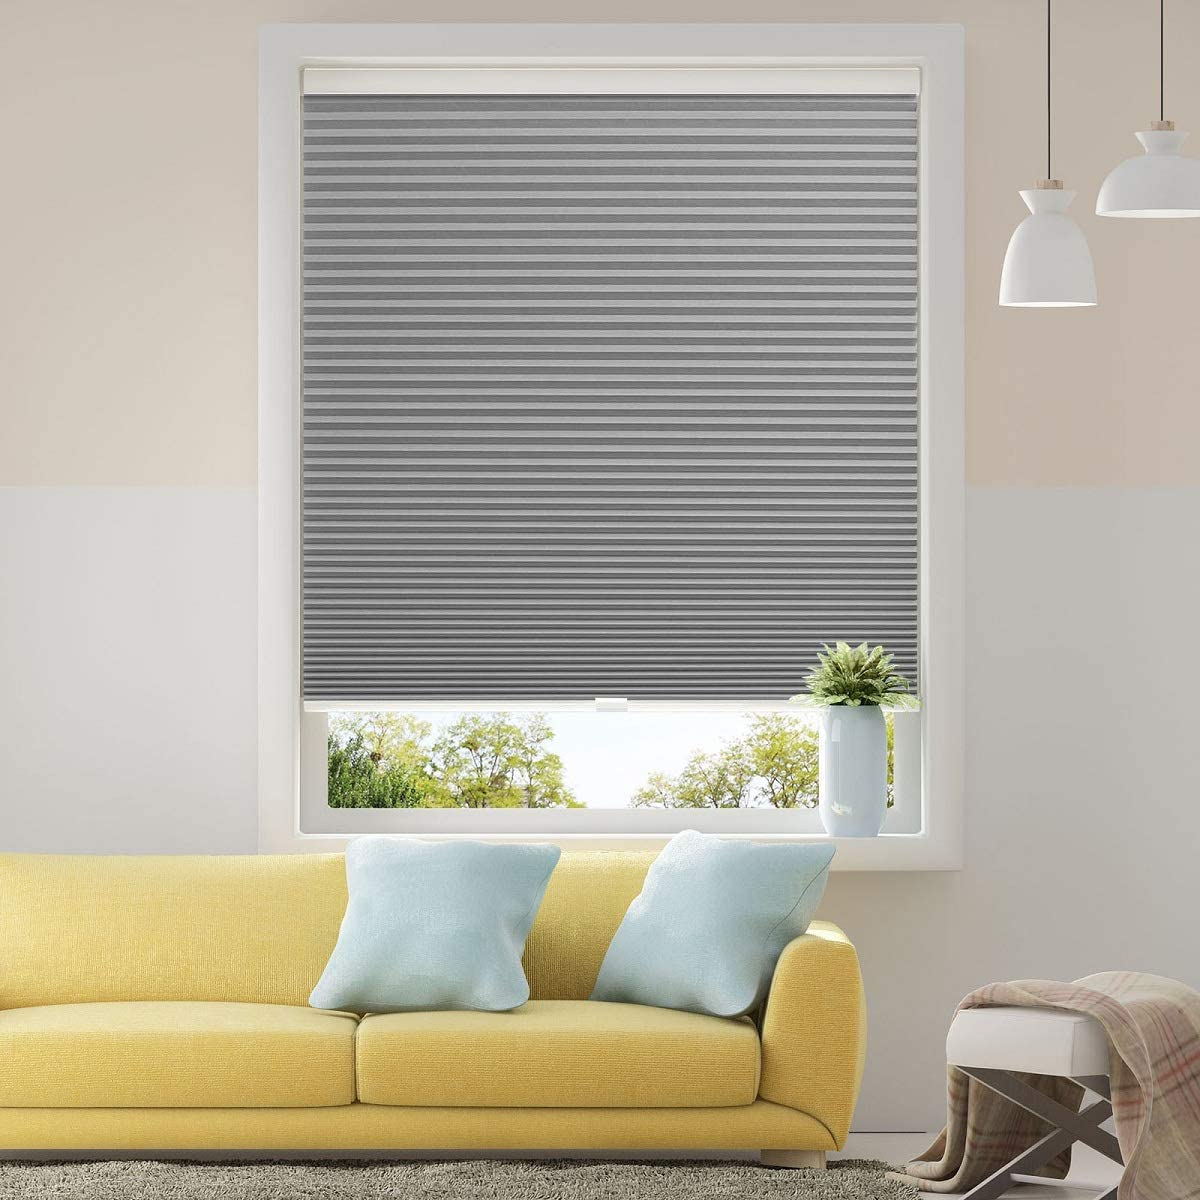 Blackout Cellular Shades Las Vegas Mall Cordless Blinds Home High quality new for Window